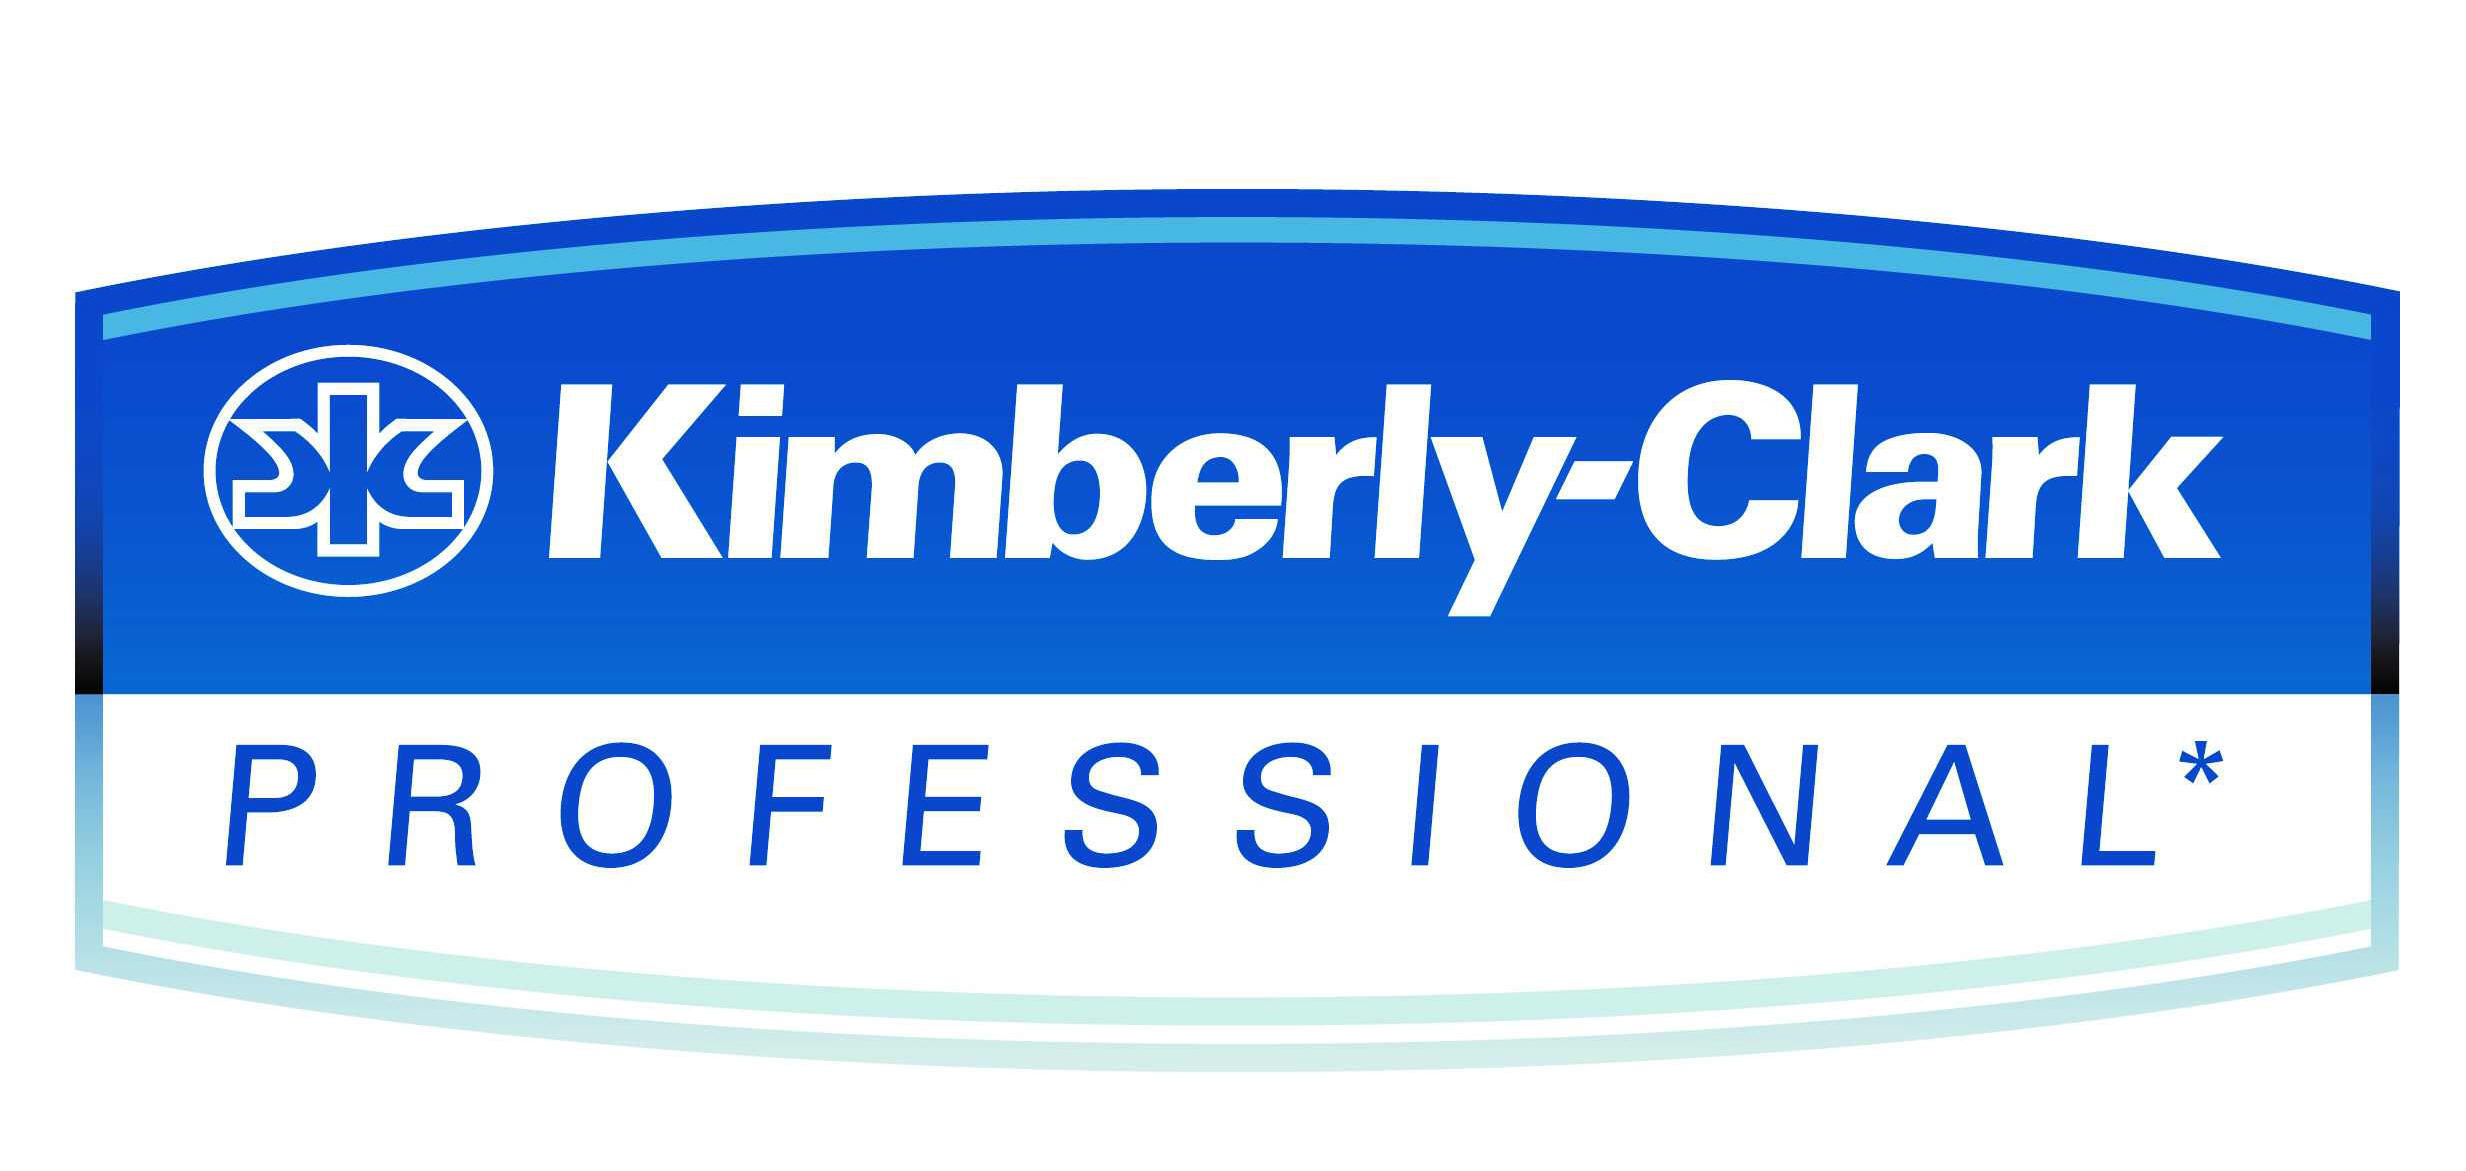 kimberly corp Kimberly-clark corporation was founded in 1870 in neenah, wisconsin and it has grown to become one of the leading global personal care companies with an employee population of 58,000 working at manufacturing facilities located in 37 different countries and with their leading brands selling in over 175 countries worldwide.